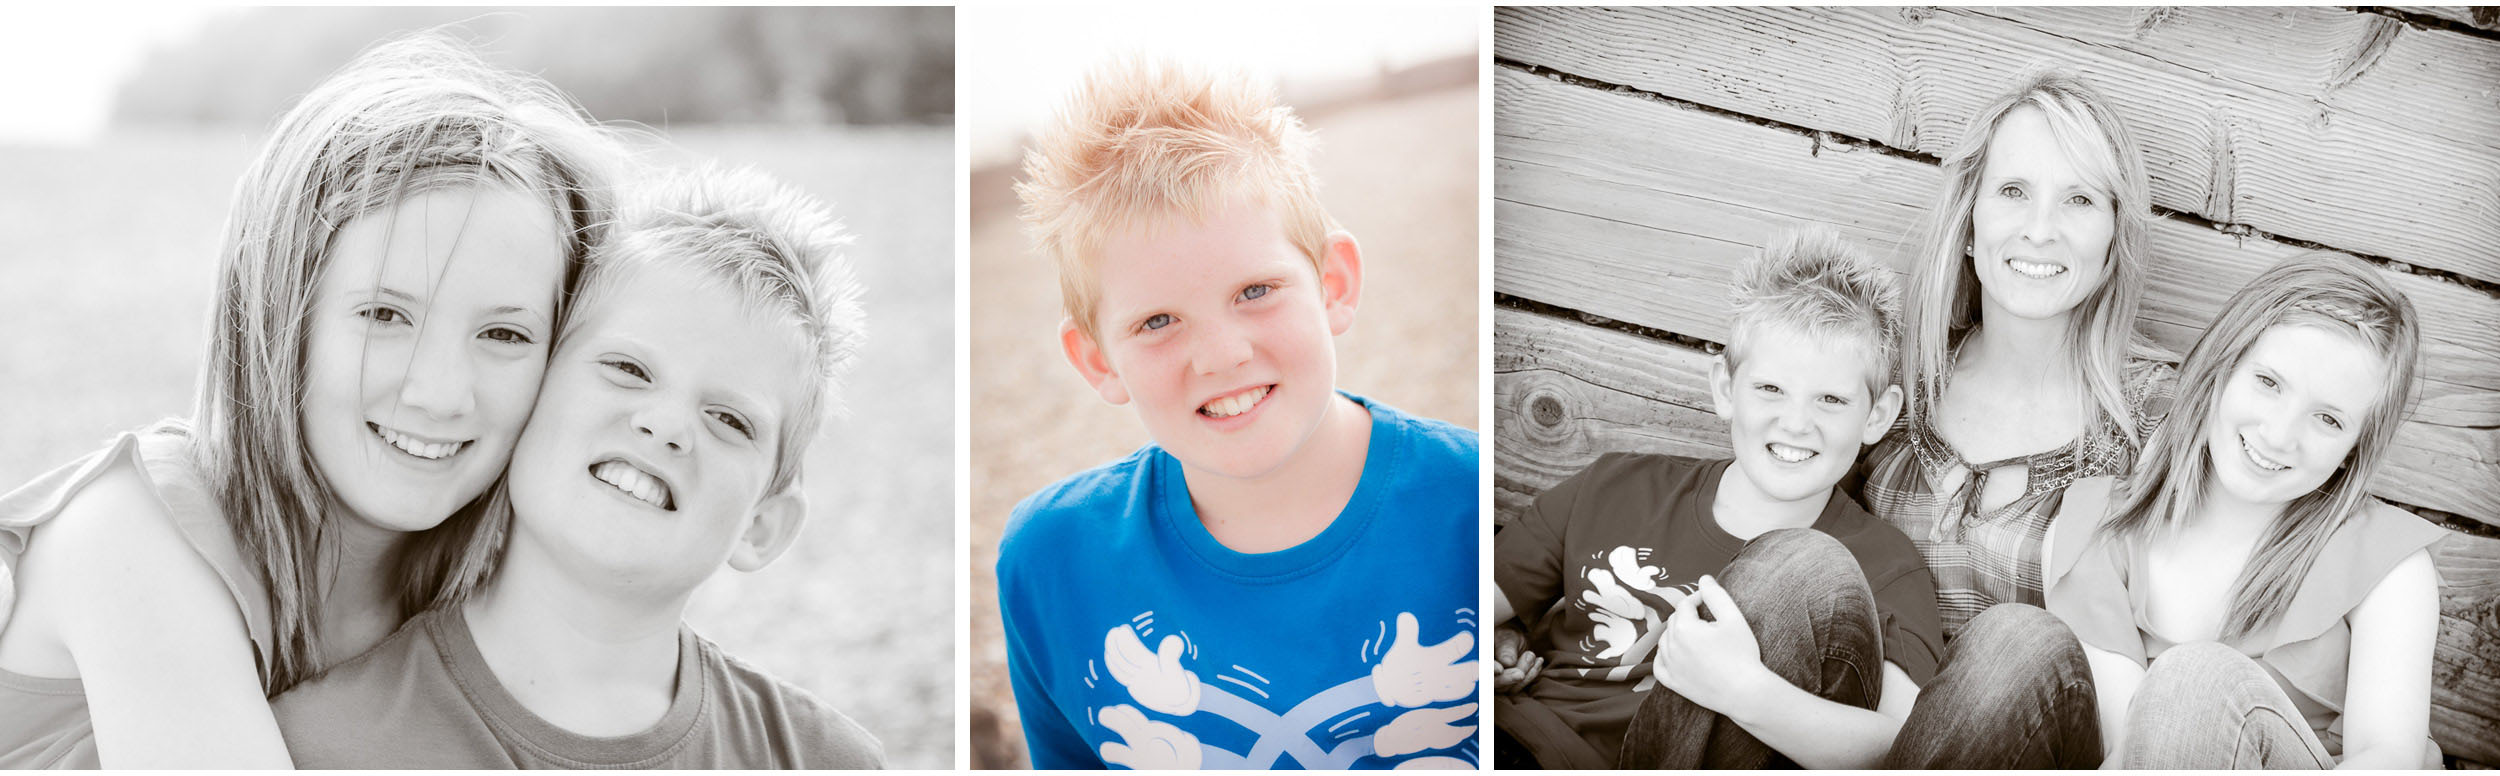 relaxed natural family portrait photography surrey